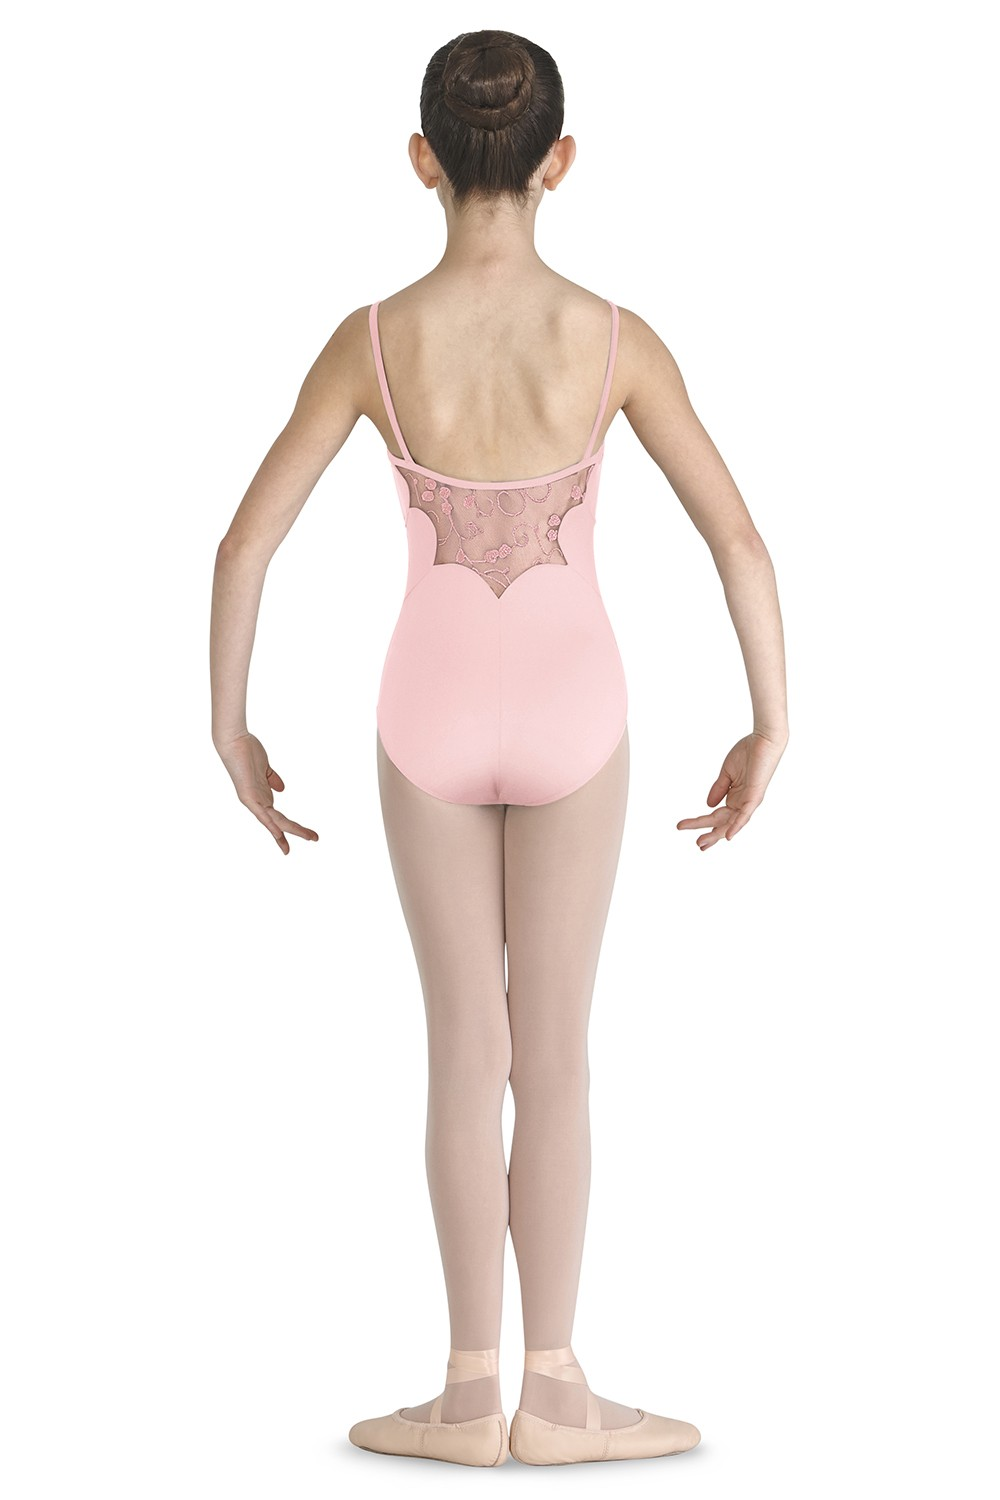 Linum Children's Dance Leotards